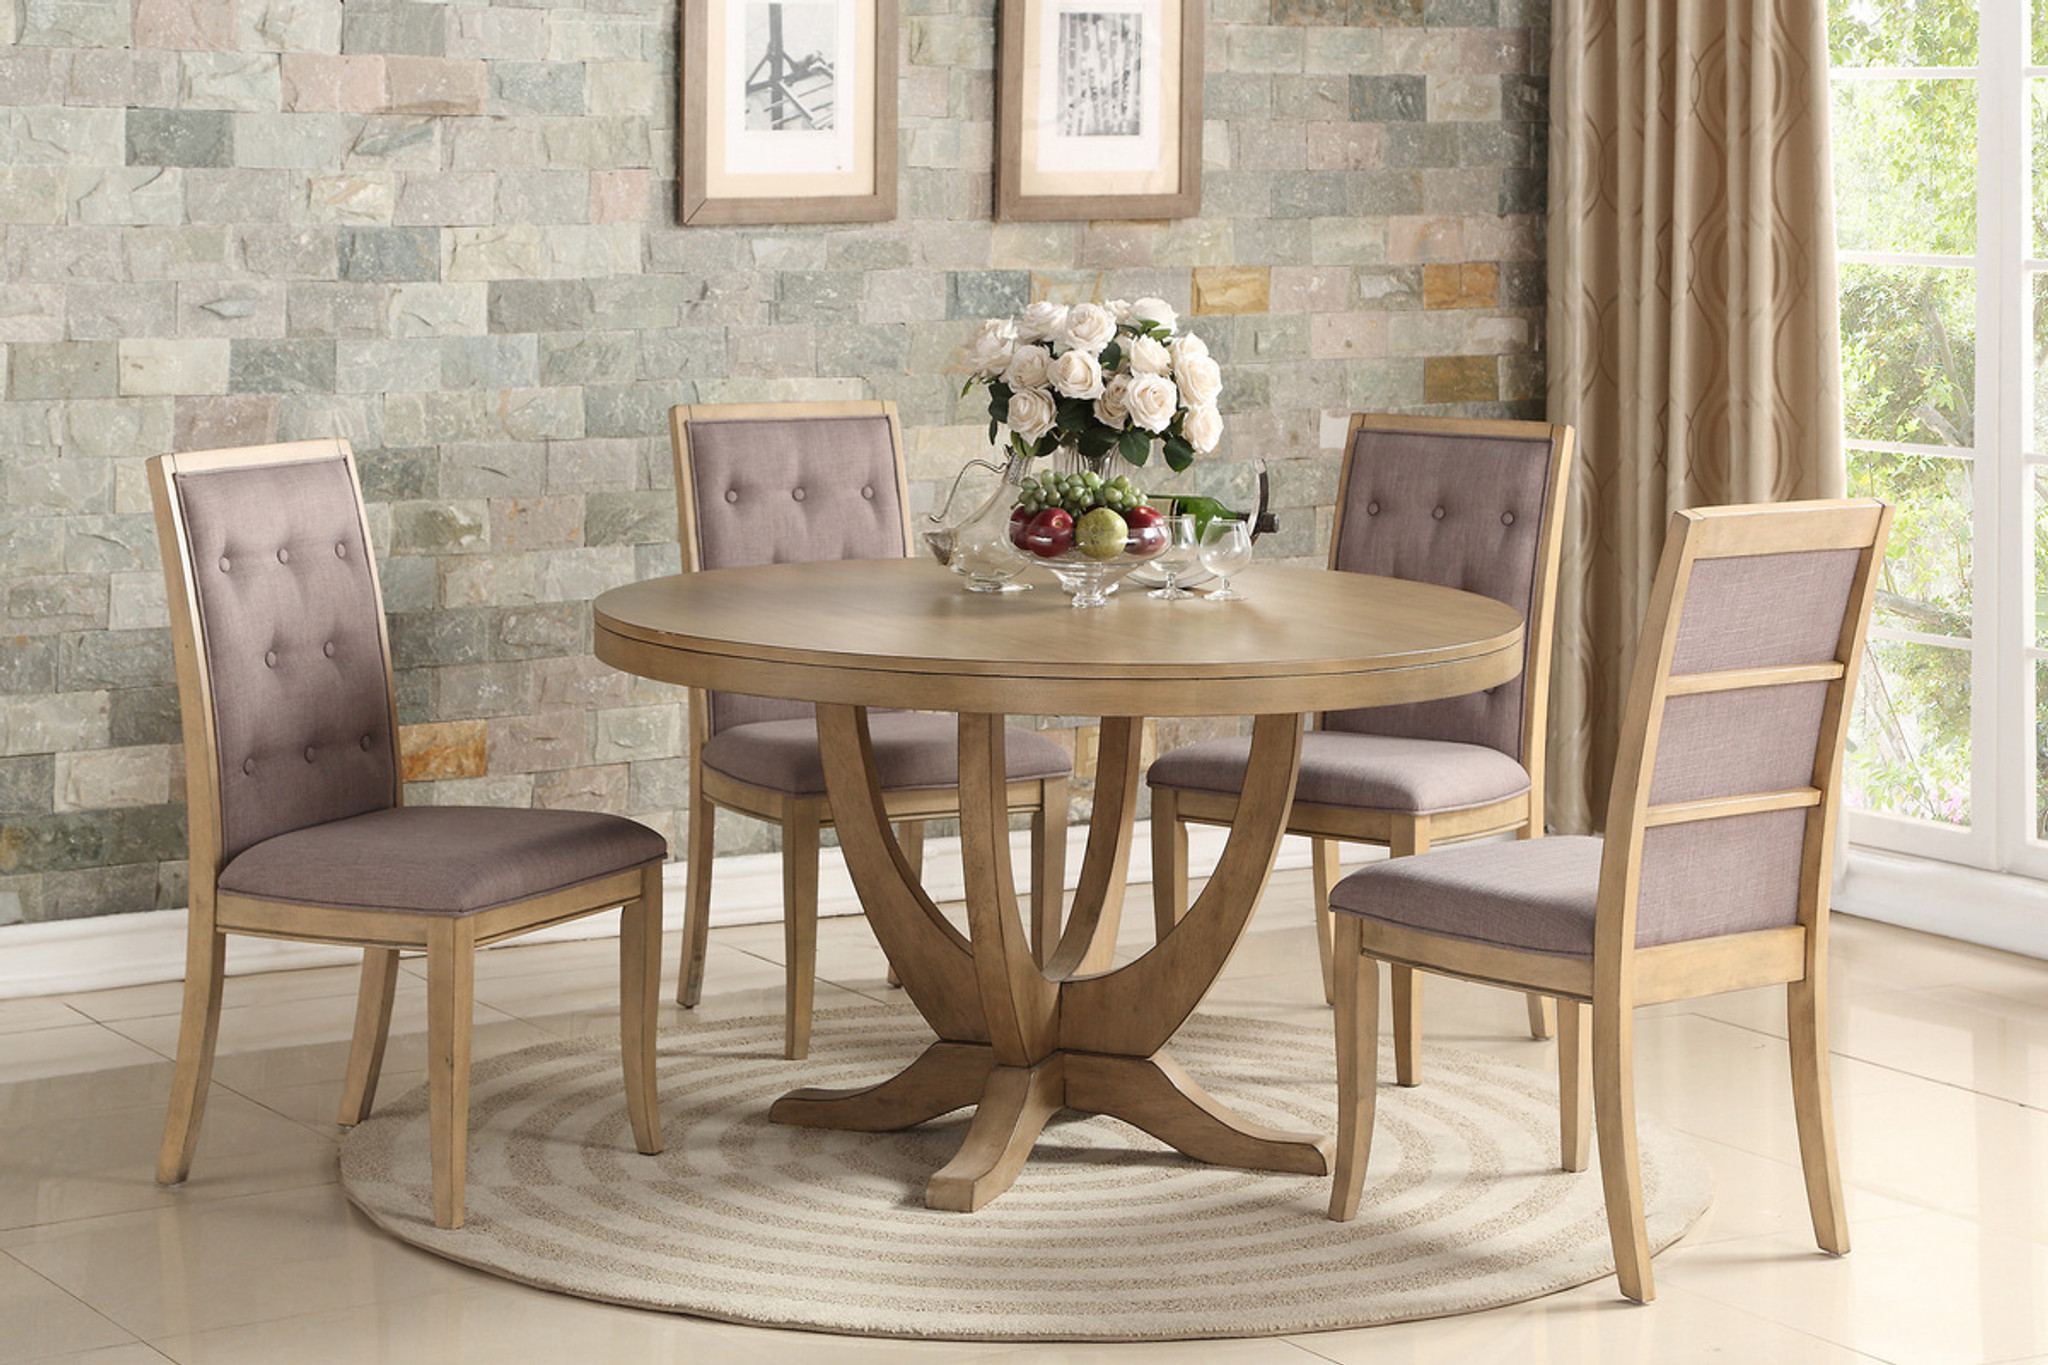 NATURAL WOOD ROUND DINING TABLE F2448